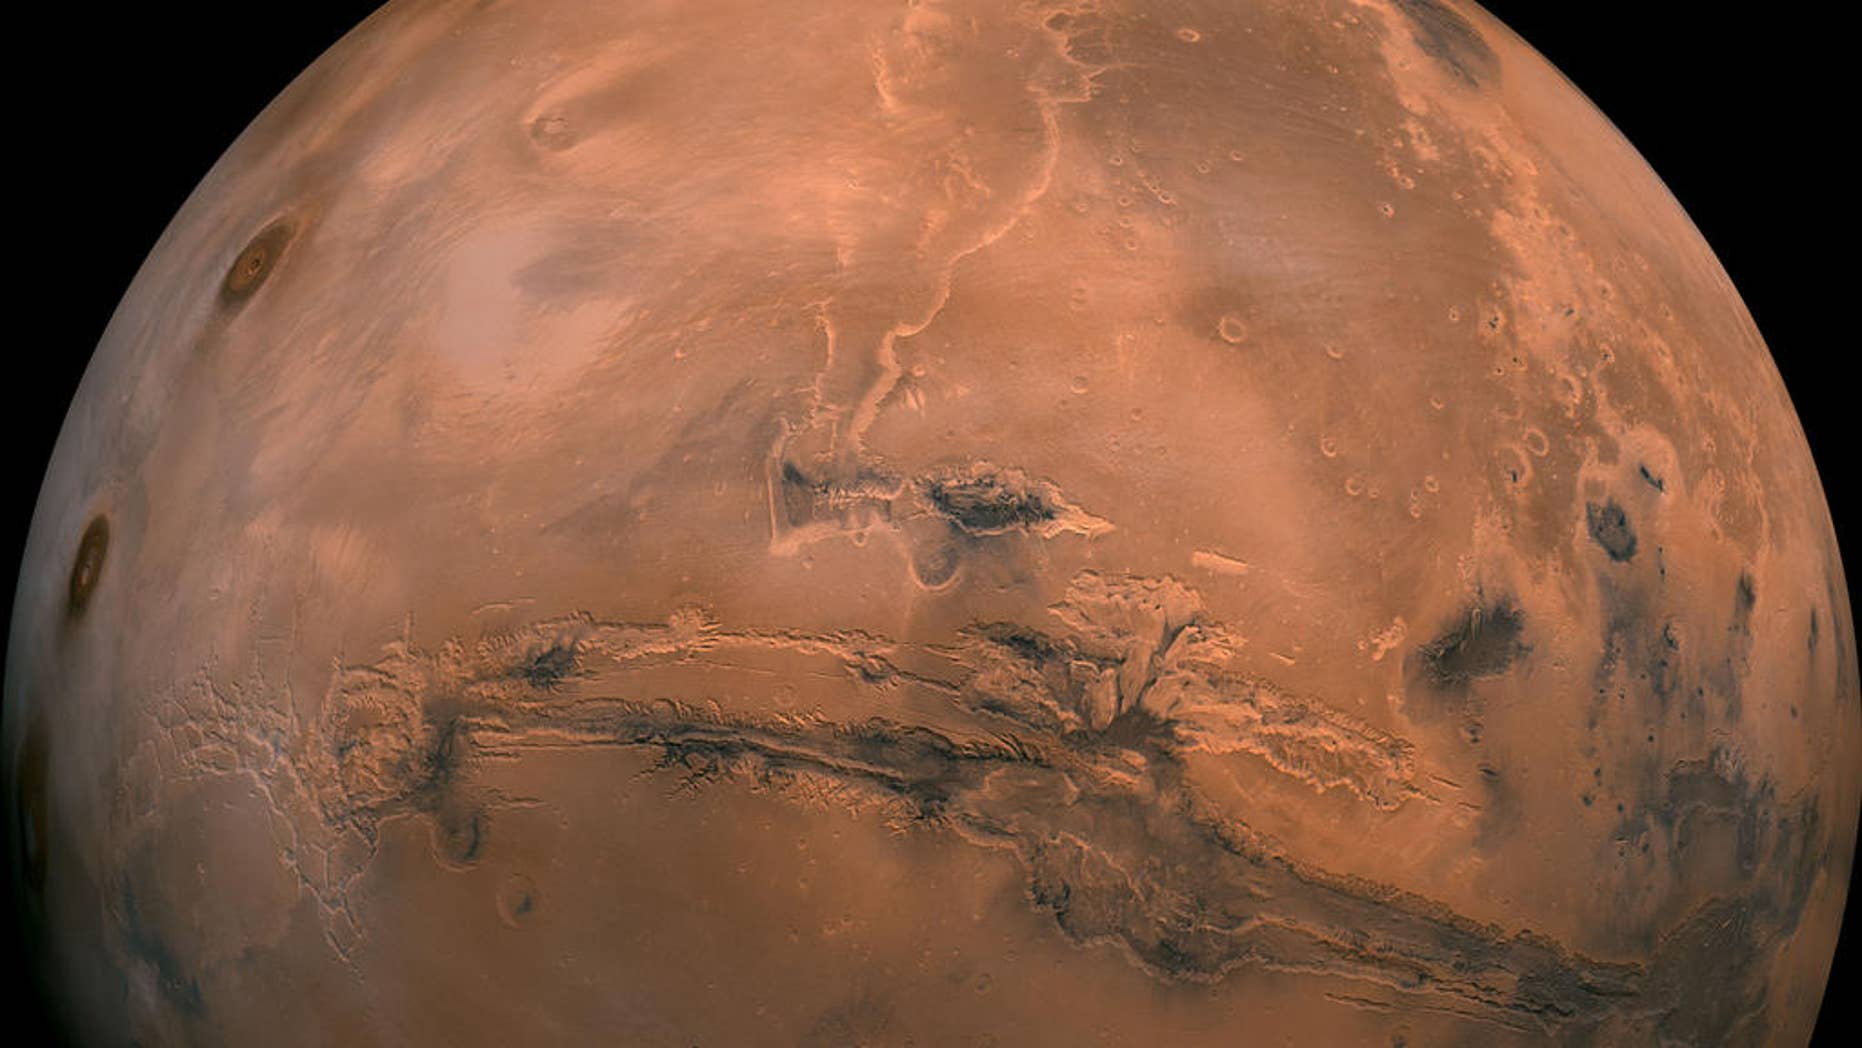 A mosaic of the Valles Marineris hemisphere of Mars. This view is similar to what one would see from a spacecraft, according to NASA.